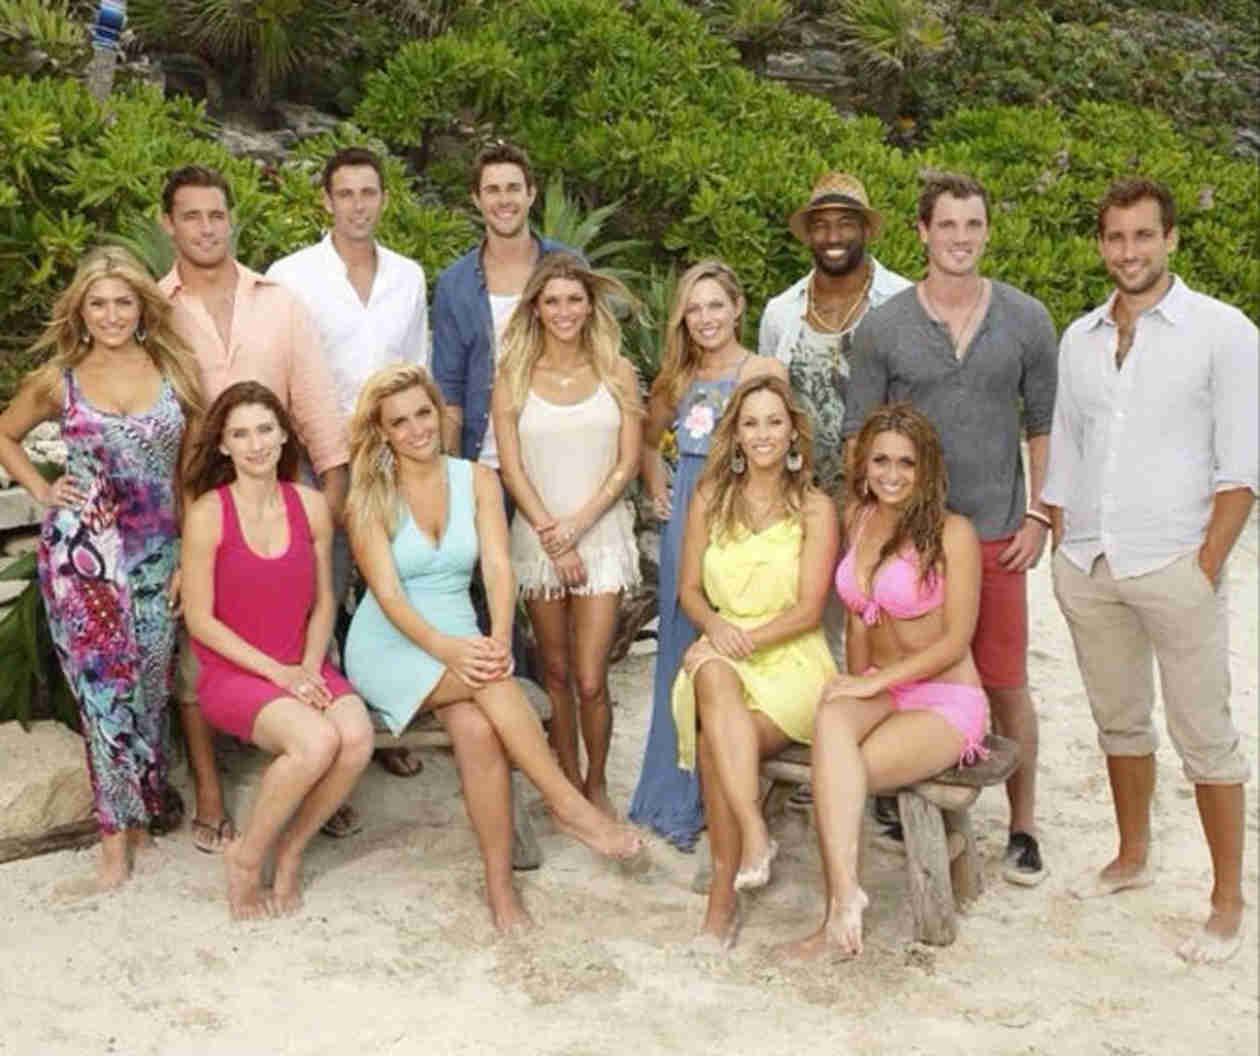 Get a First Look at The Bachelor in Paradise Cast and Their Swanky Mexico Digs